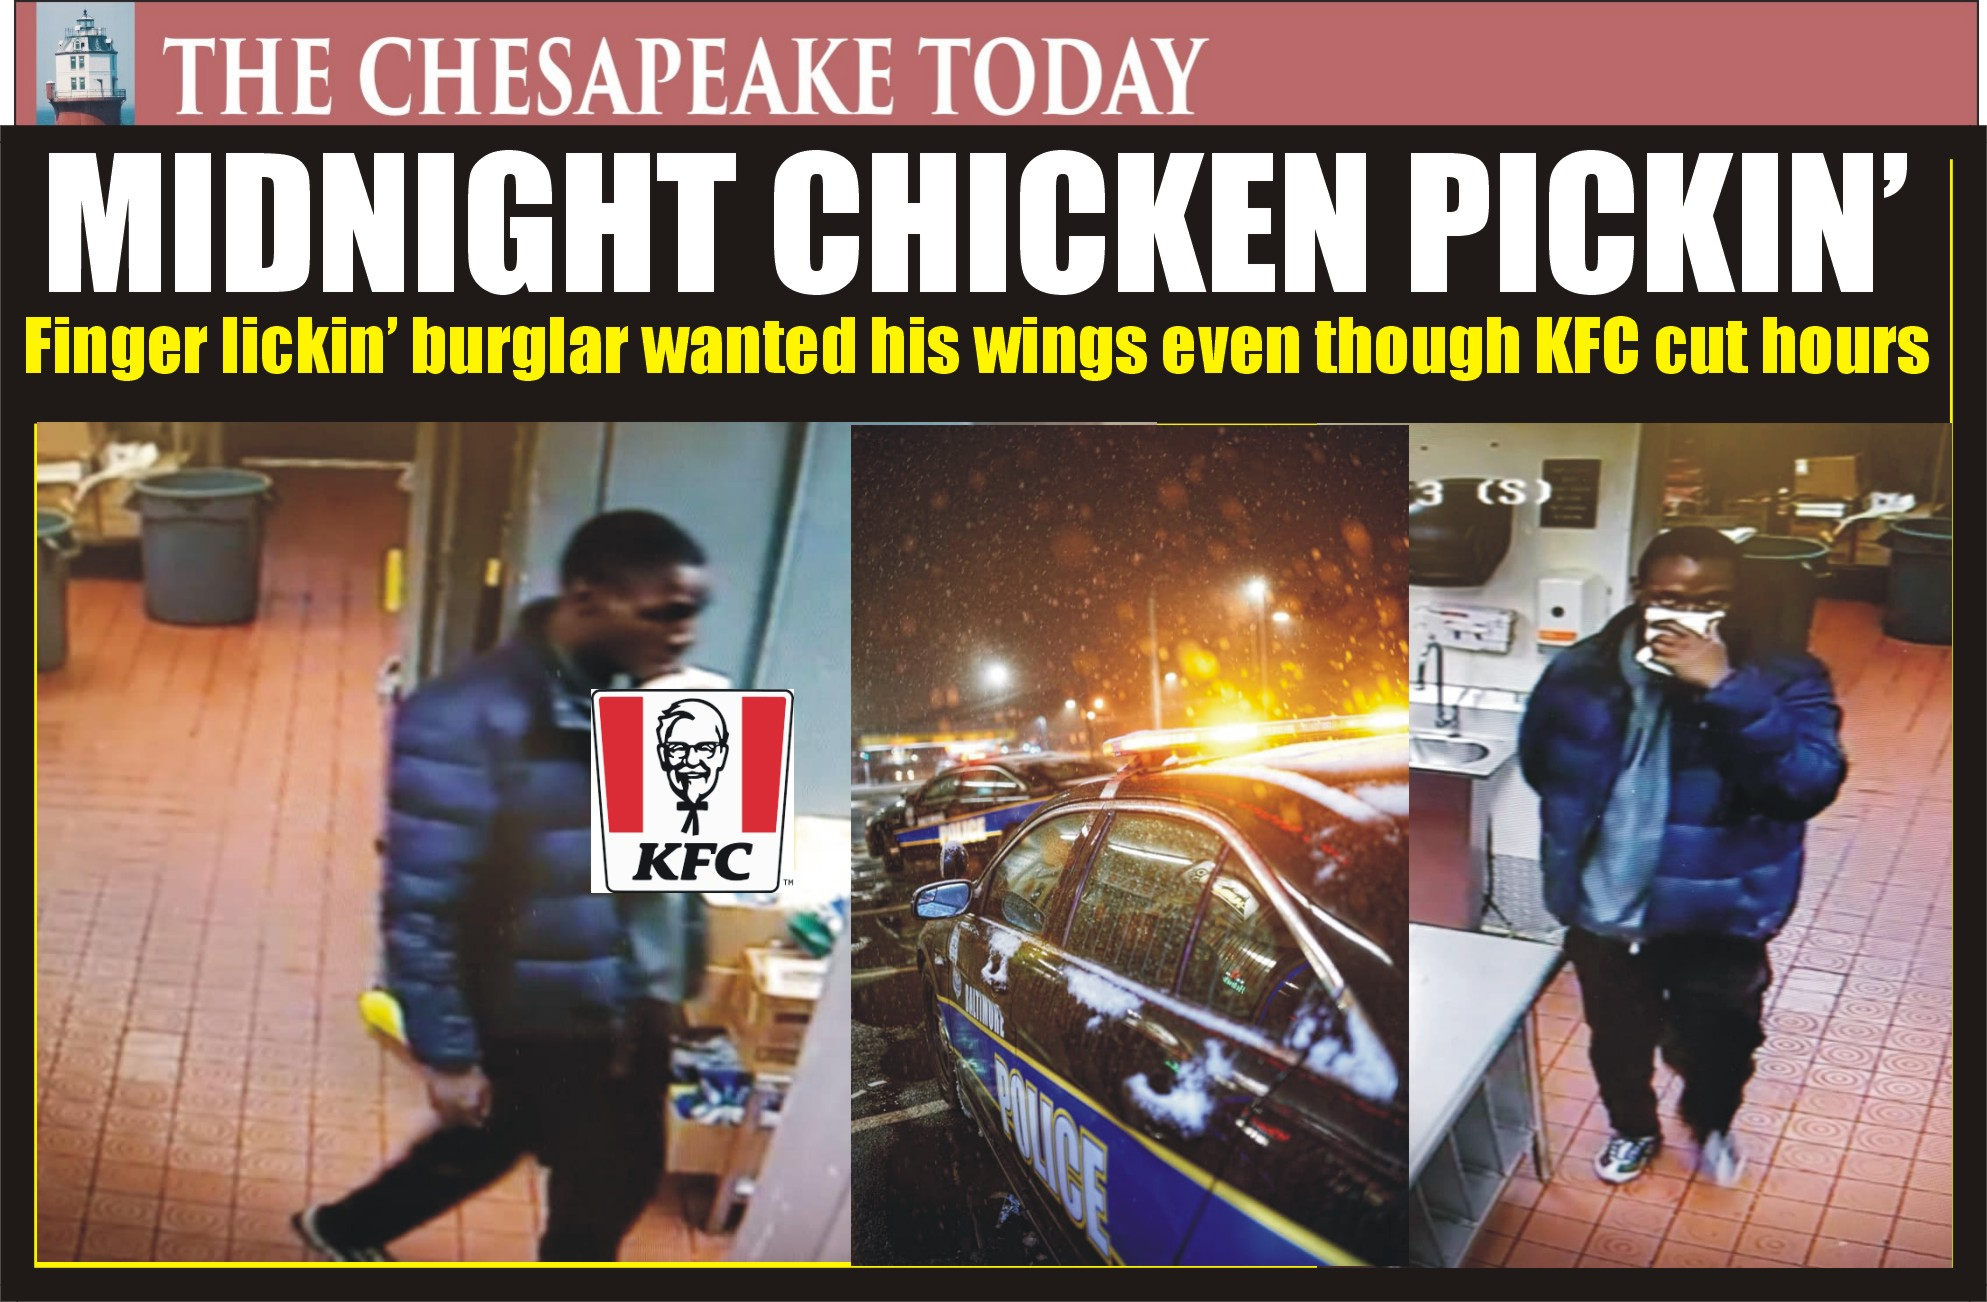 FINGER LICKIN' PICKIN' MIDNIGHT CHICKEN SUPPLY: Burglar didn't want to eat in so he carried out stolen food